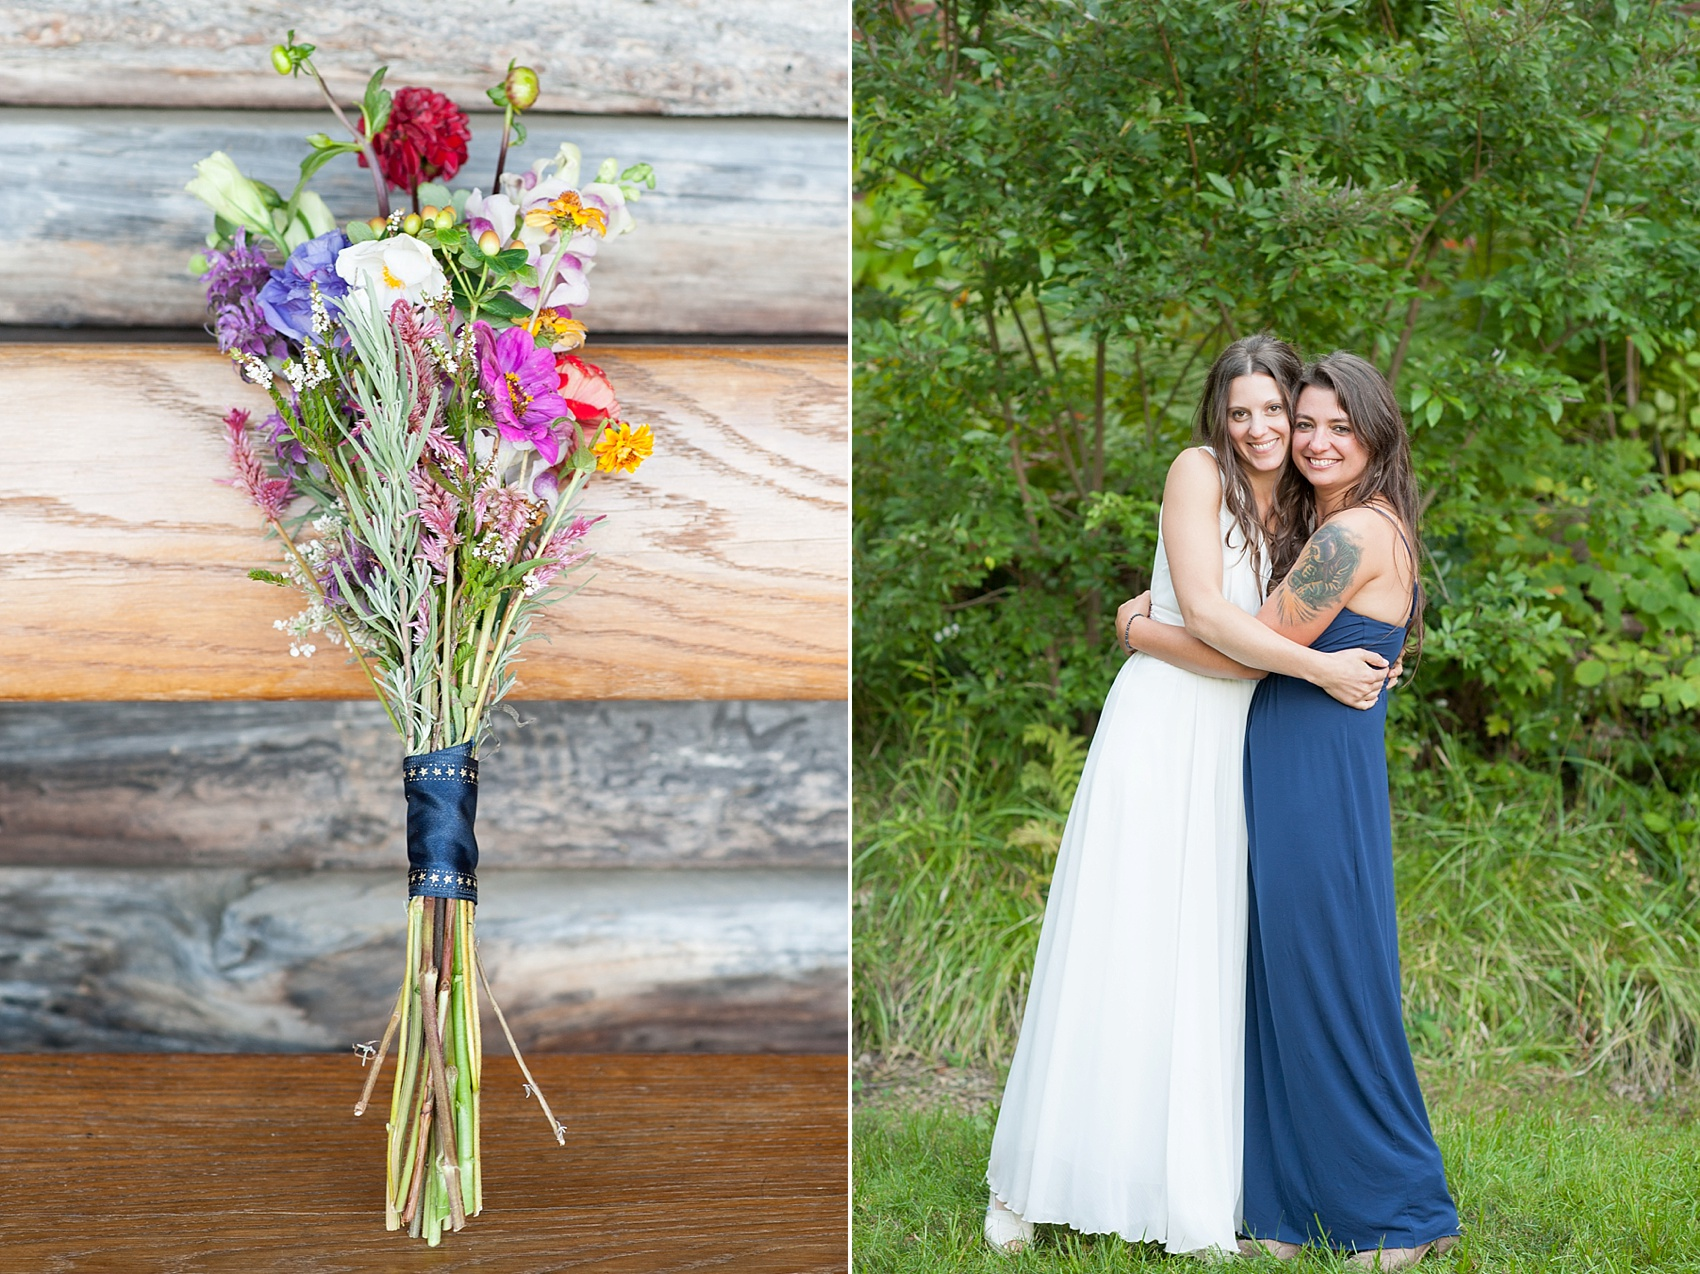 Rustic Berkshires camp wedding with wildflower bouquets. Photos by Massachusetts wedding photographer, Mikkel Paige Photography.